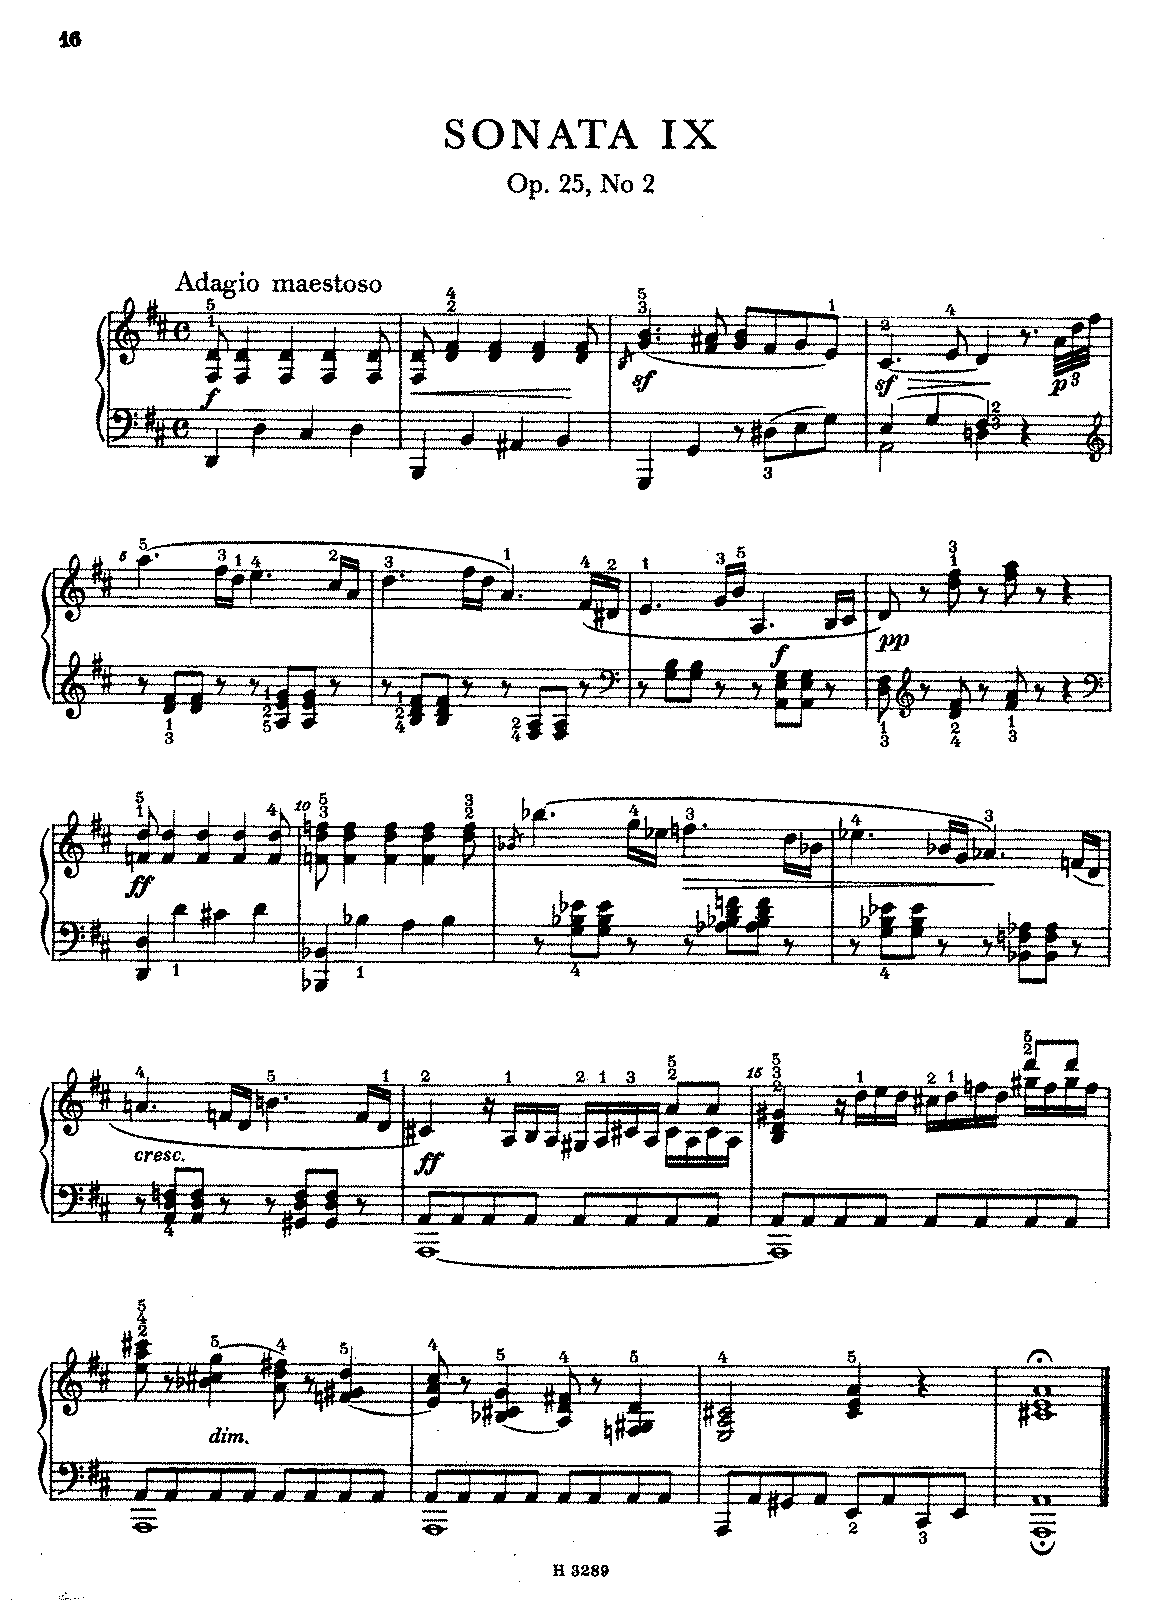 Dussek - Op.25 No.2 - Sonata in D Major.pdf